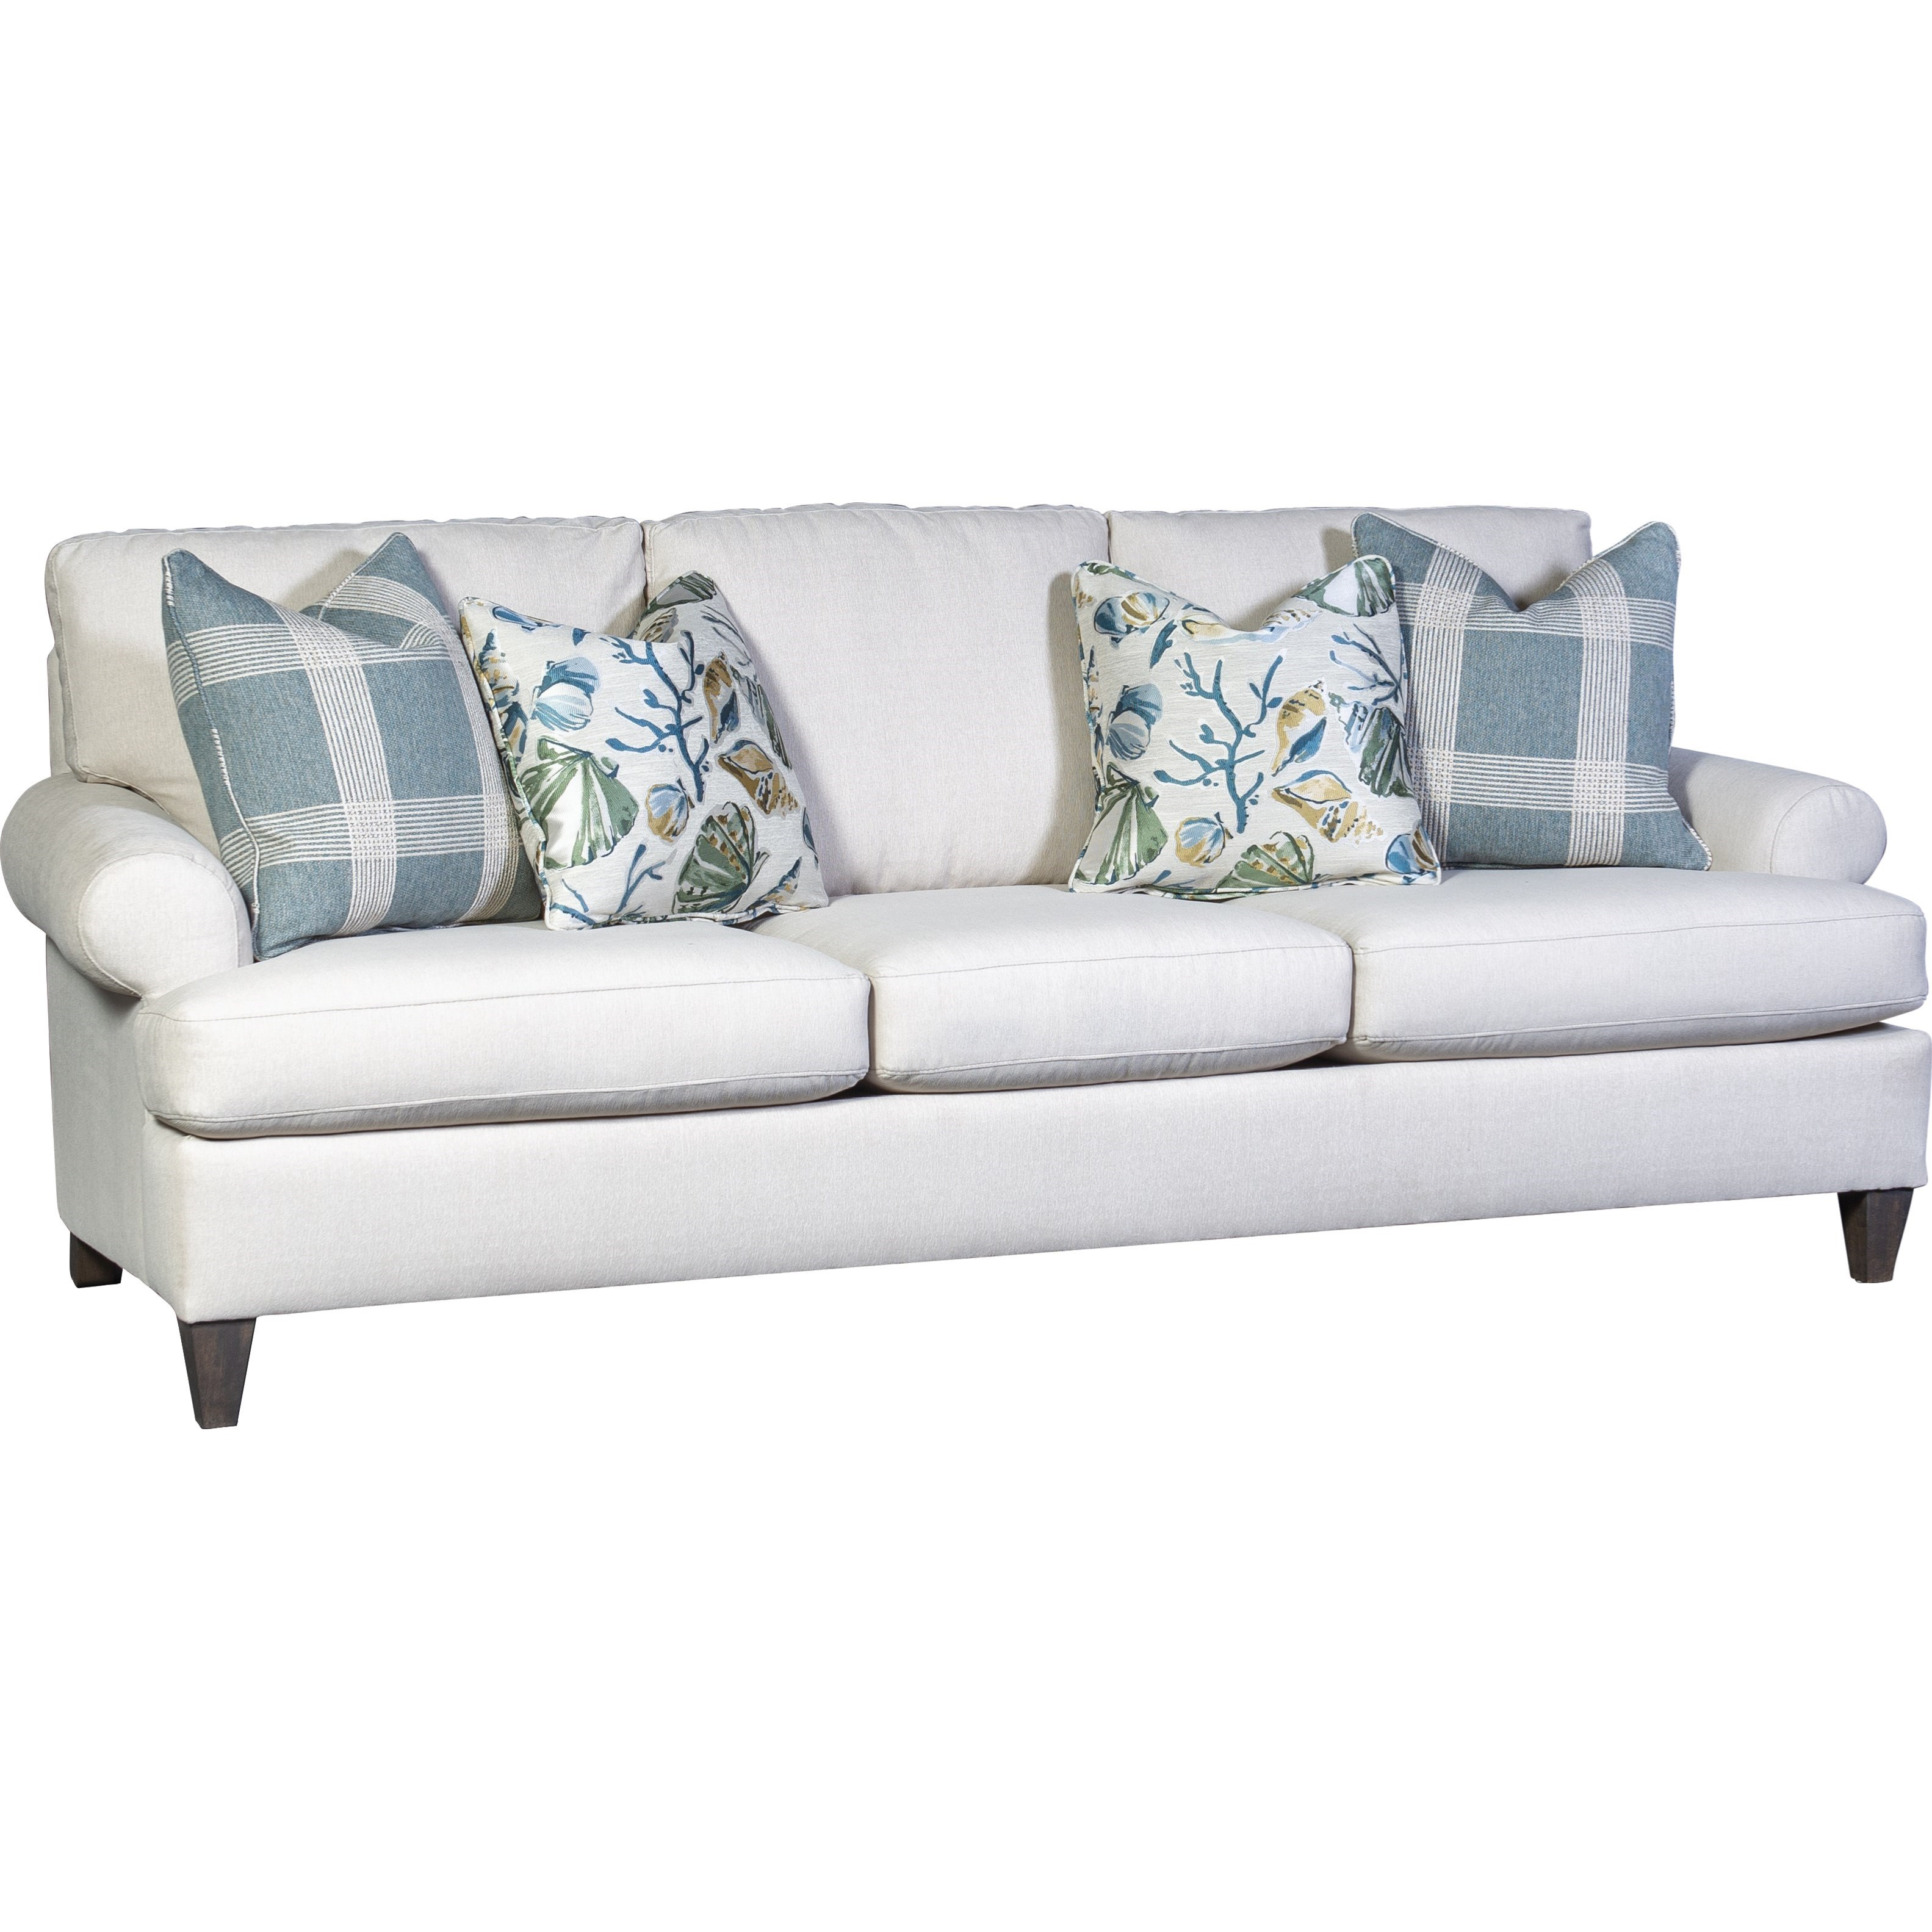 3270 Sofa by Mayo at Wilcox Furniture